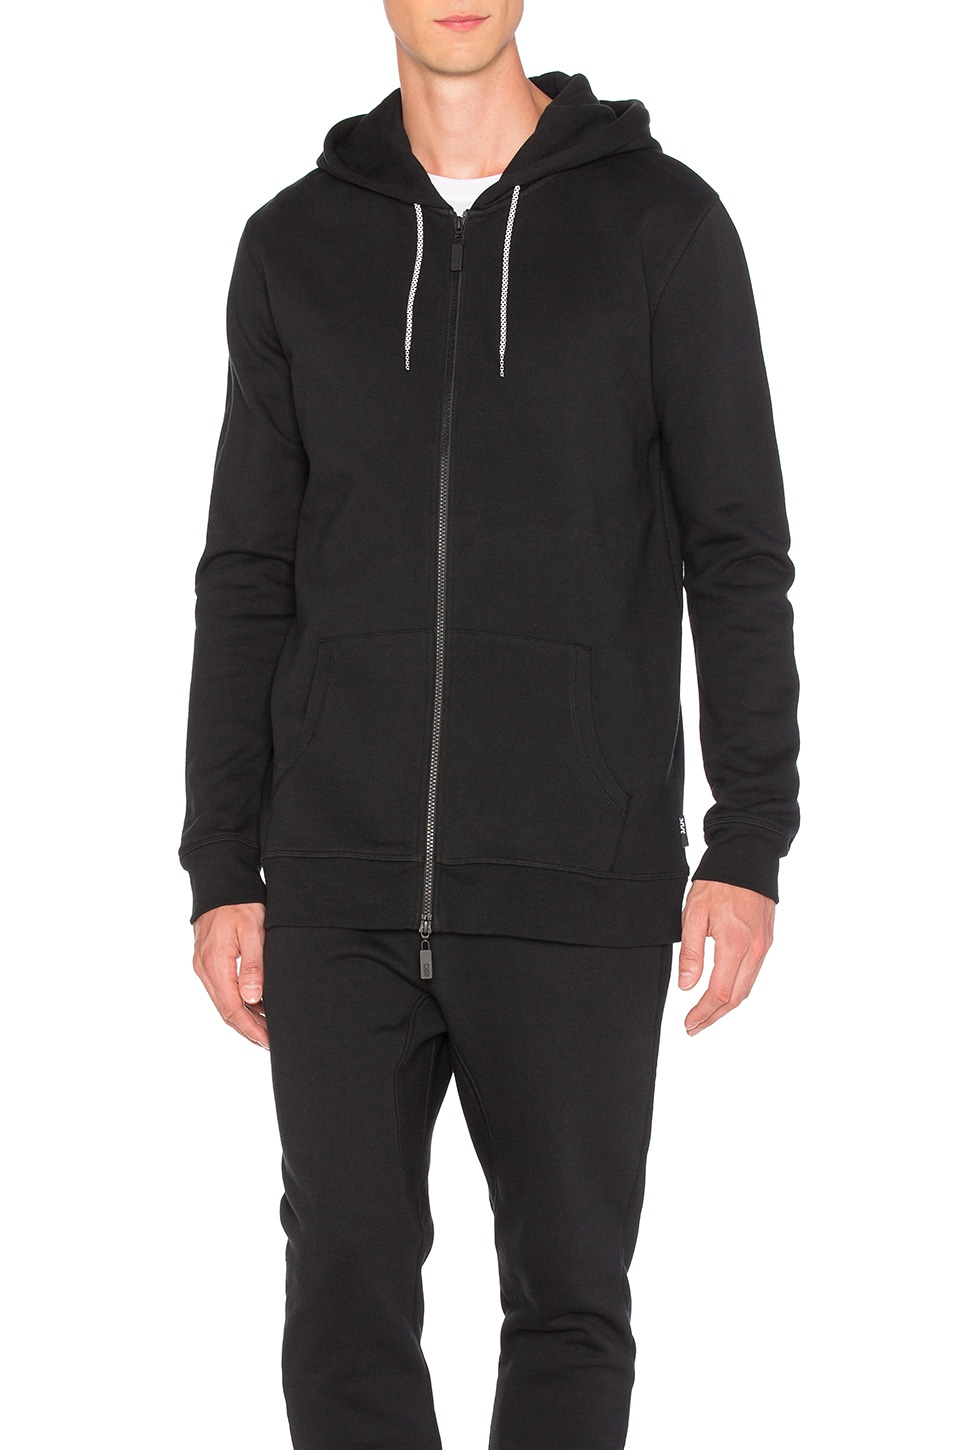 Classic Zip Up Hoodie by Asics Platinum